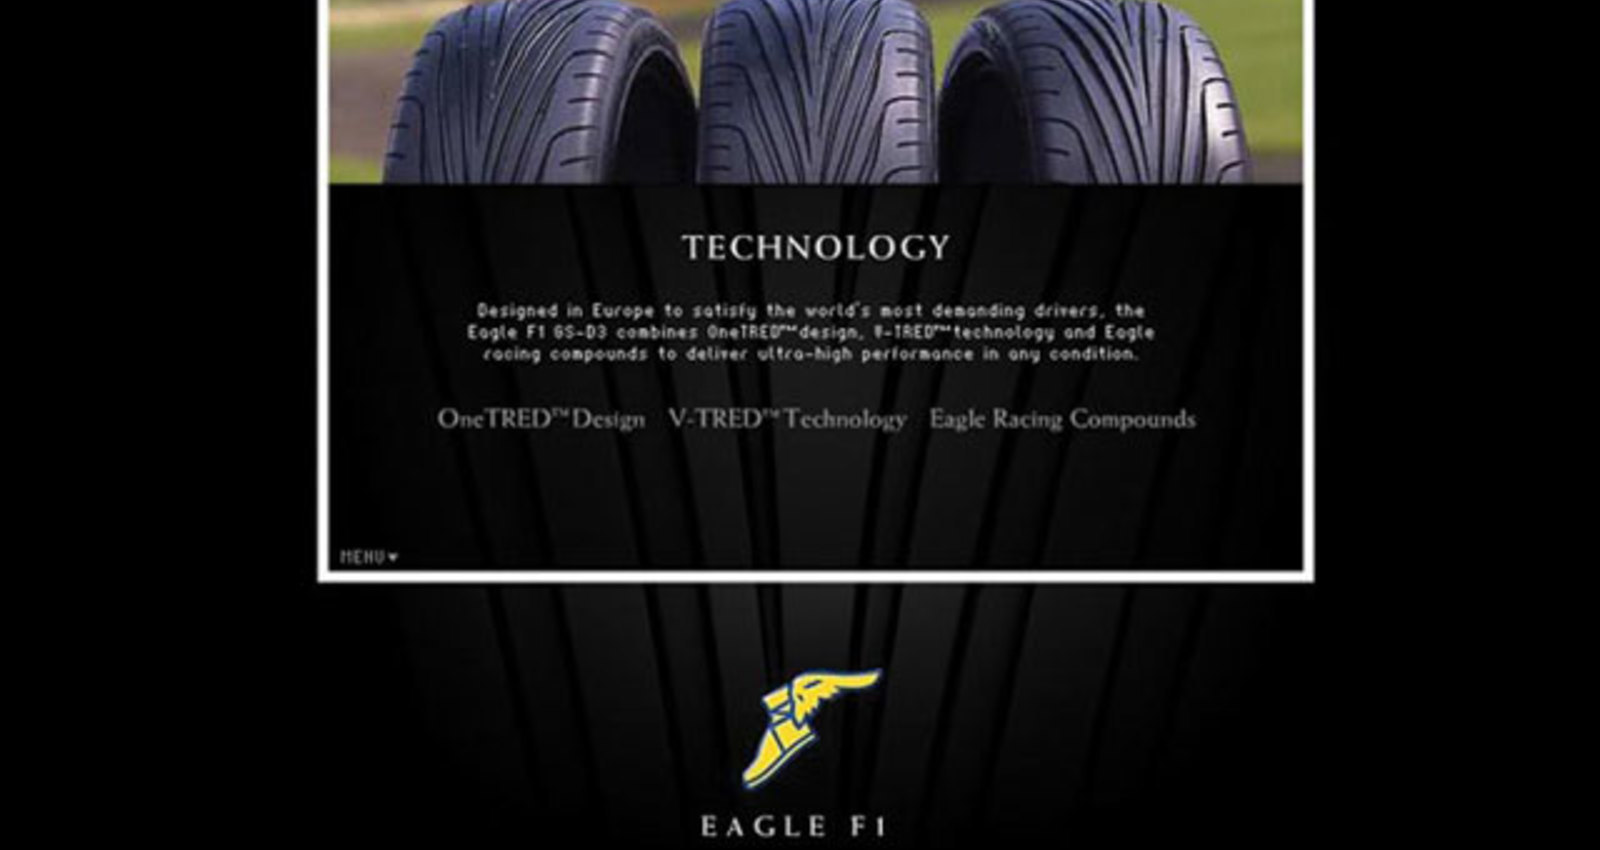 Eagle F1 Web Site